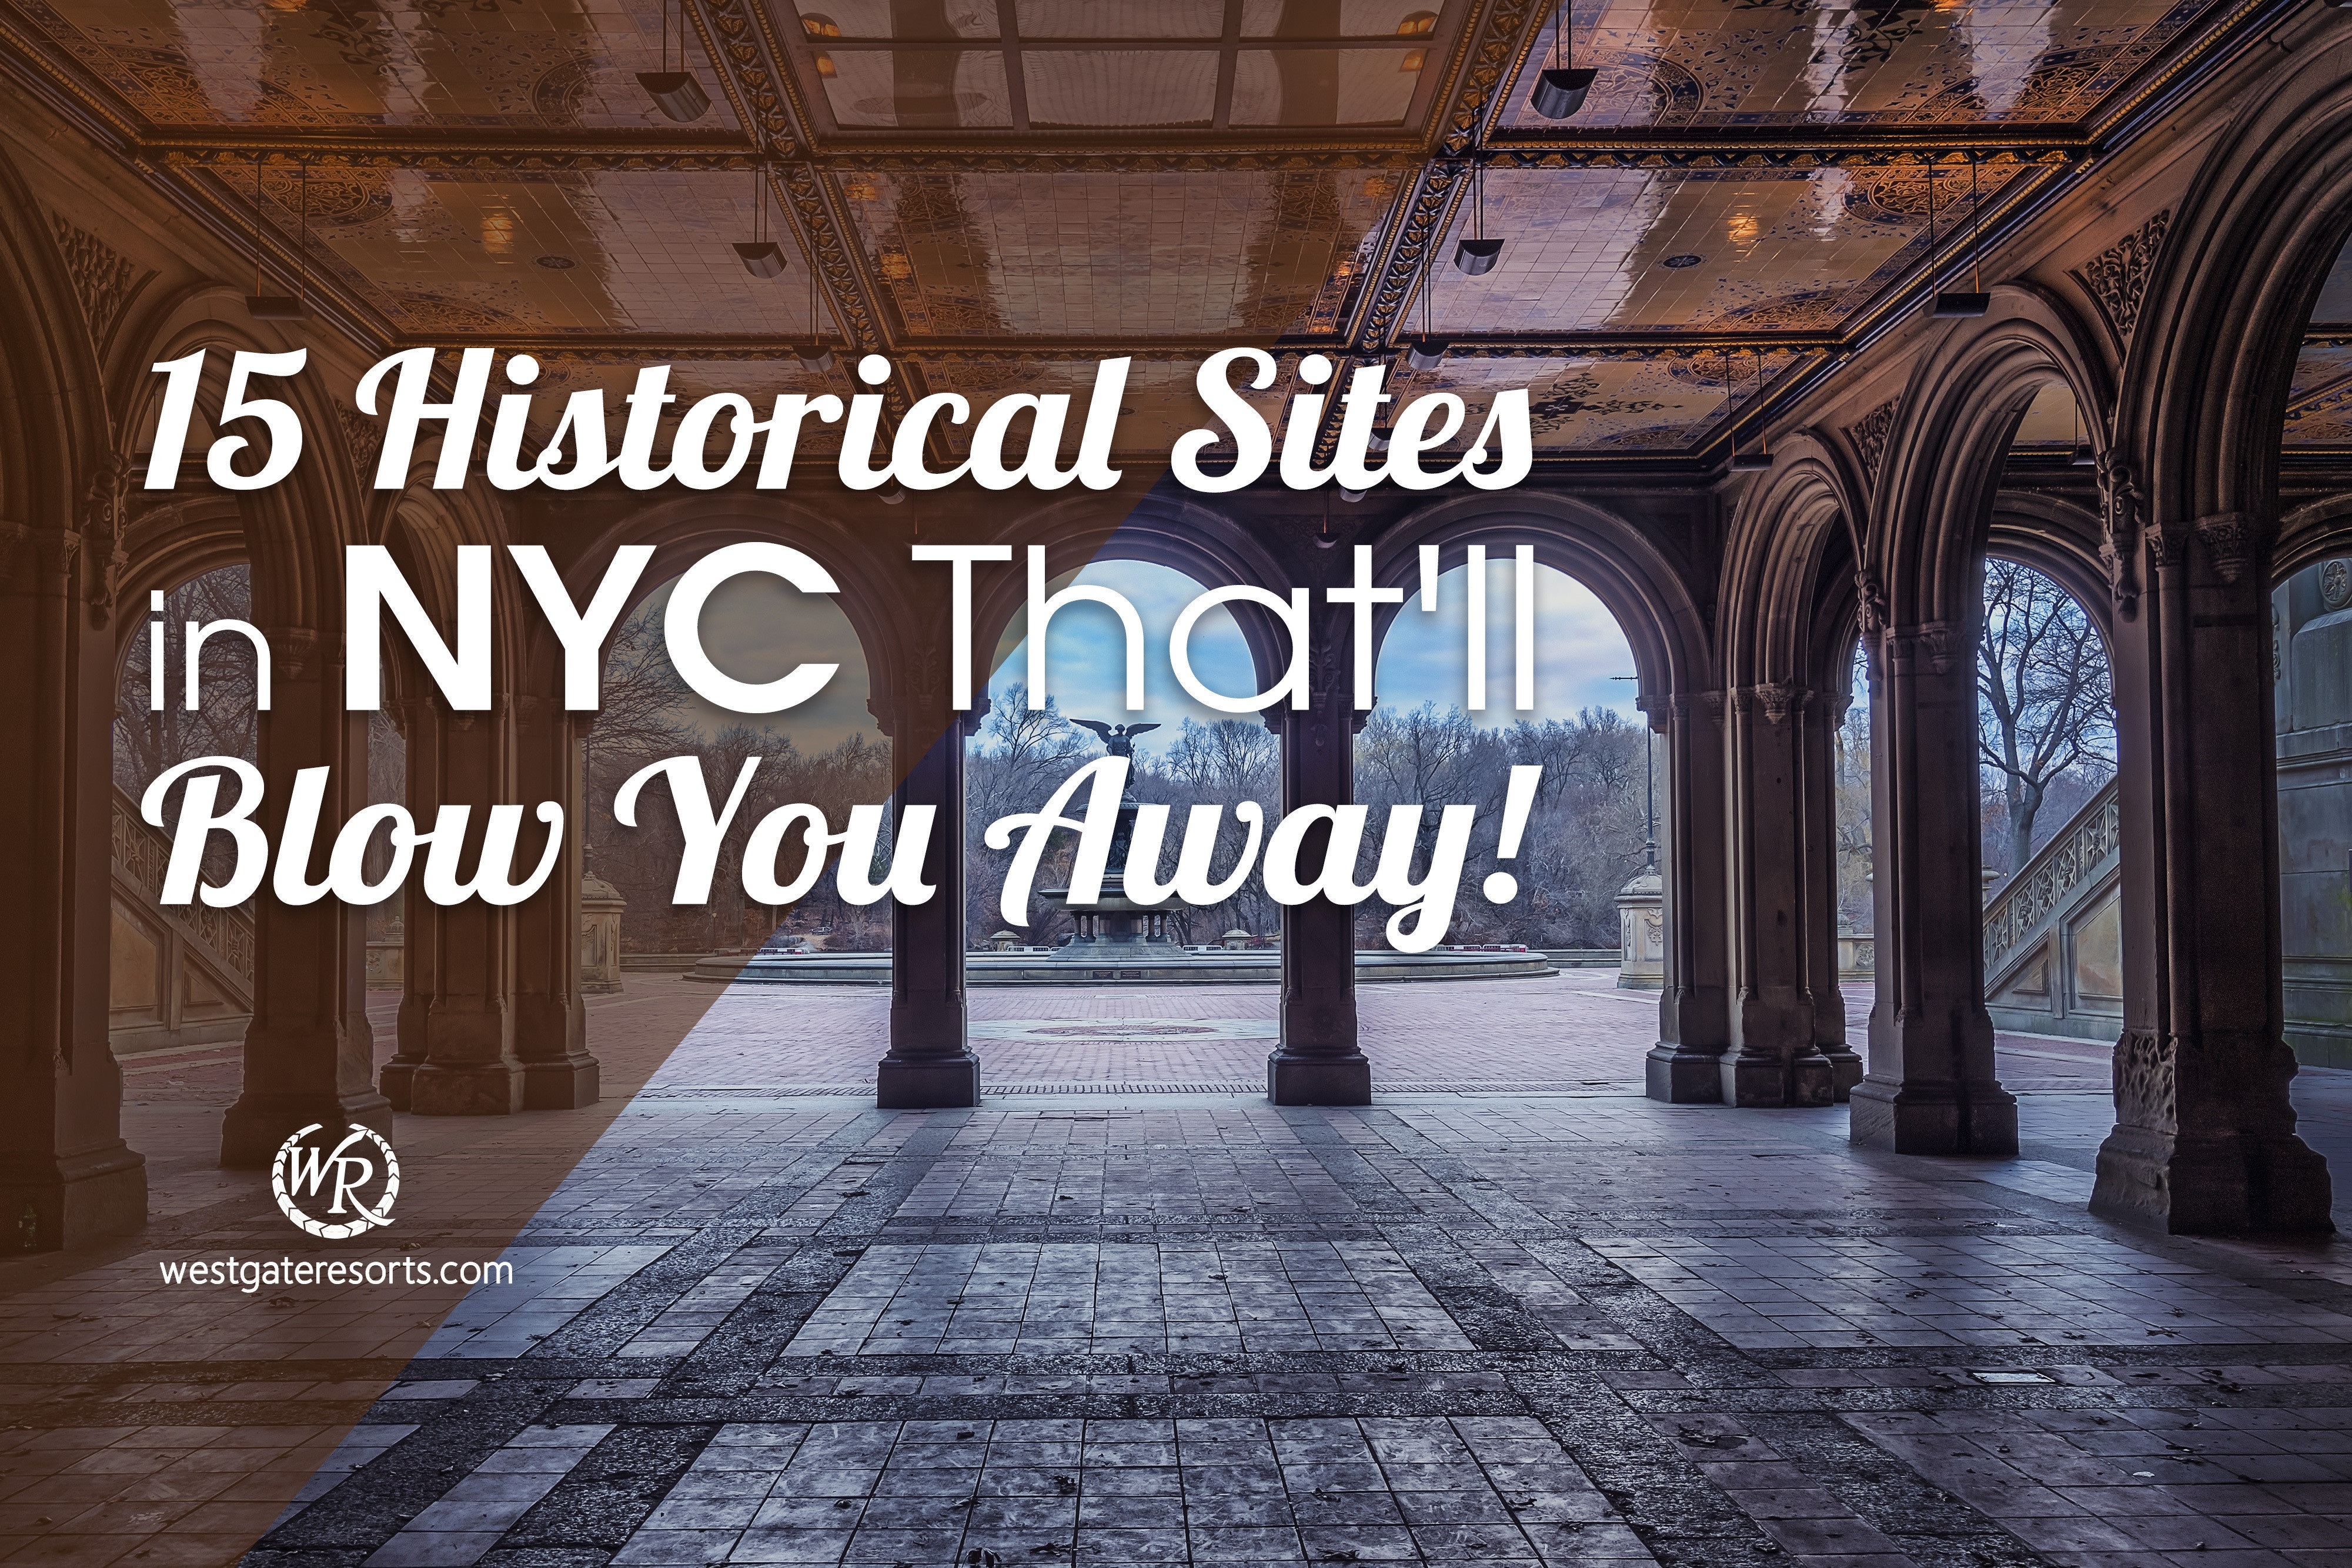 15 Historical Sites in NYC That'll Blow You Away!